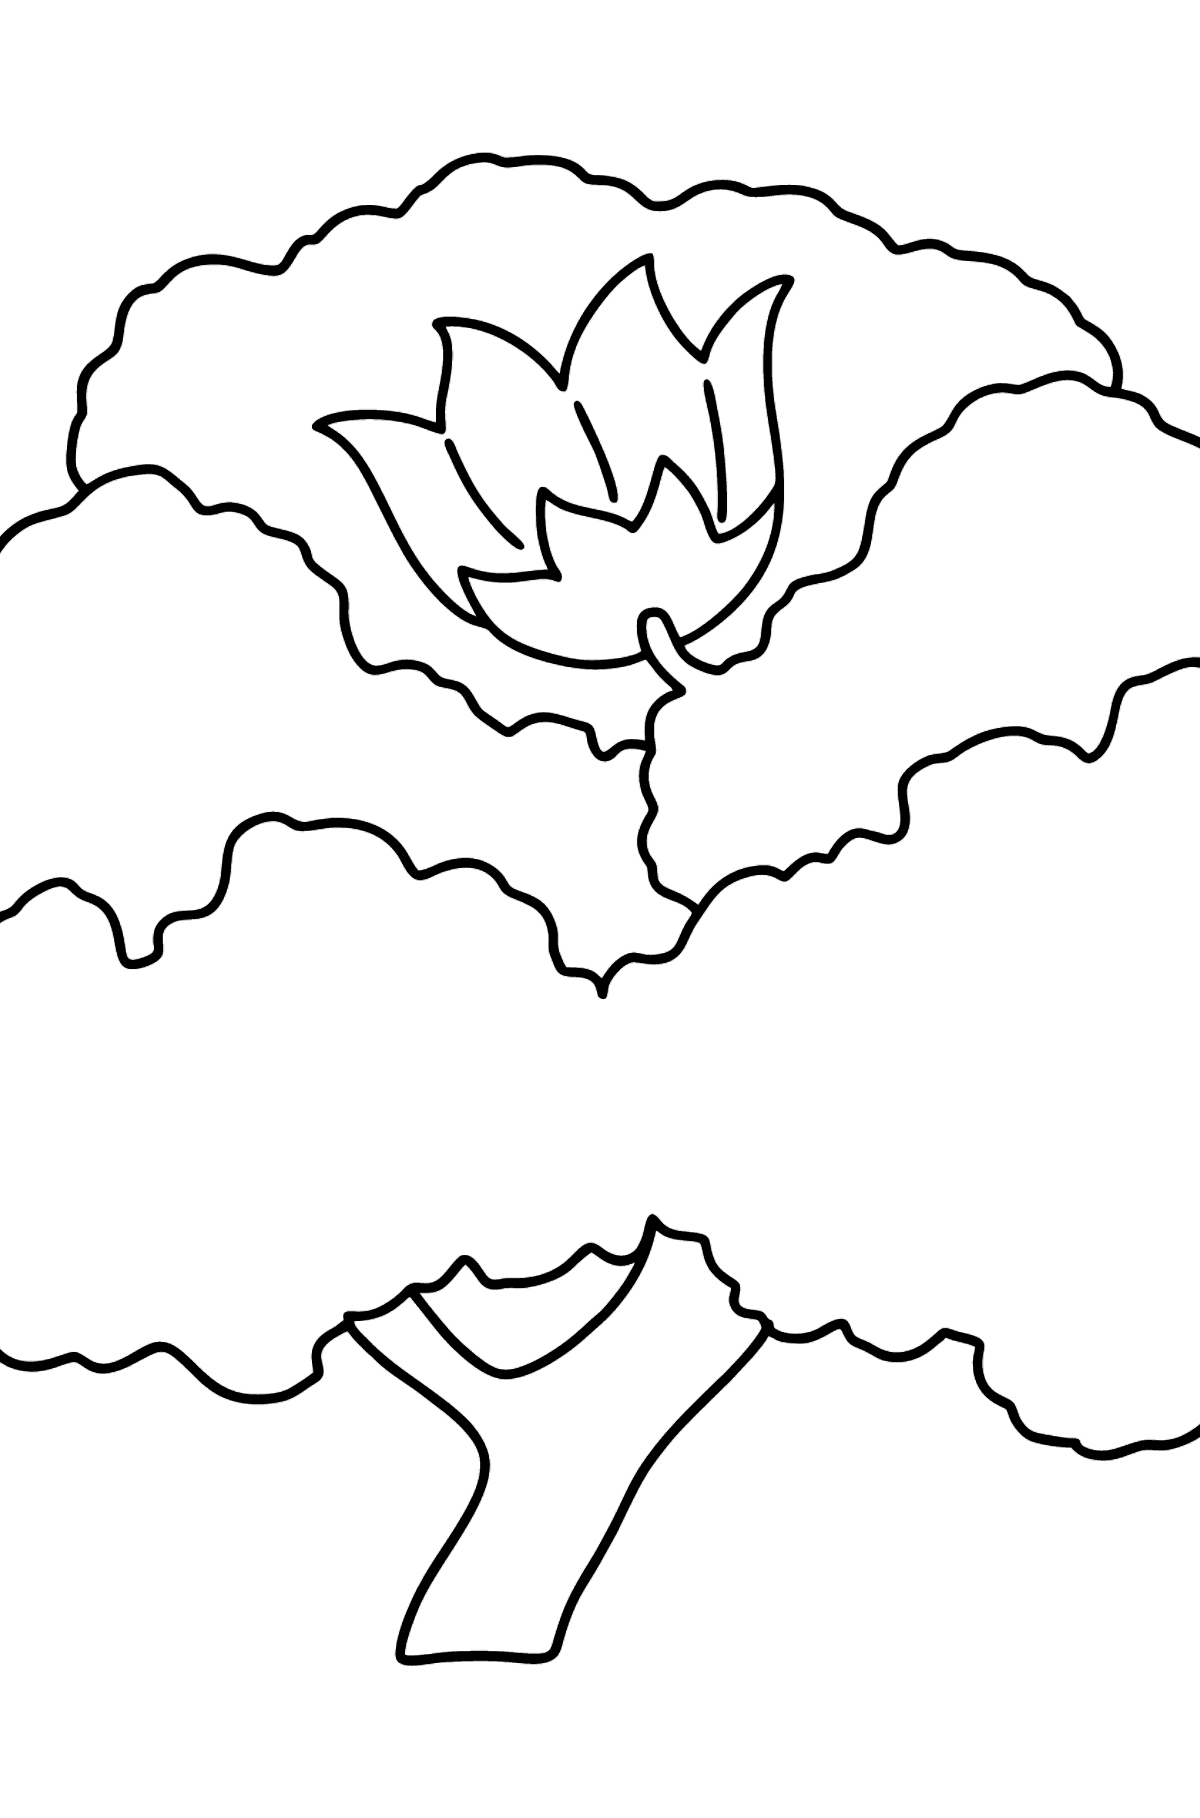 Tulip Tree coloring page - Coloring Pages for Kids